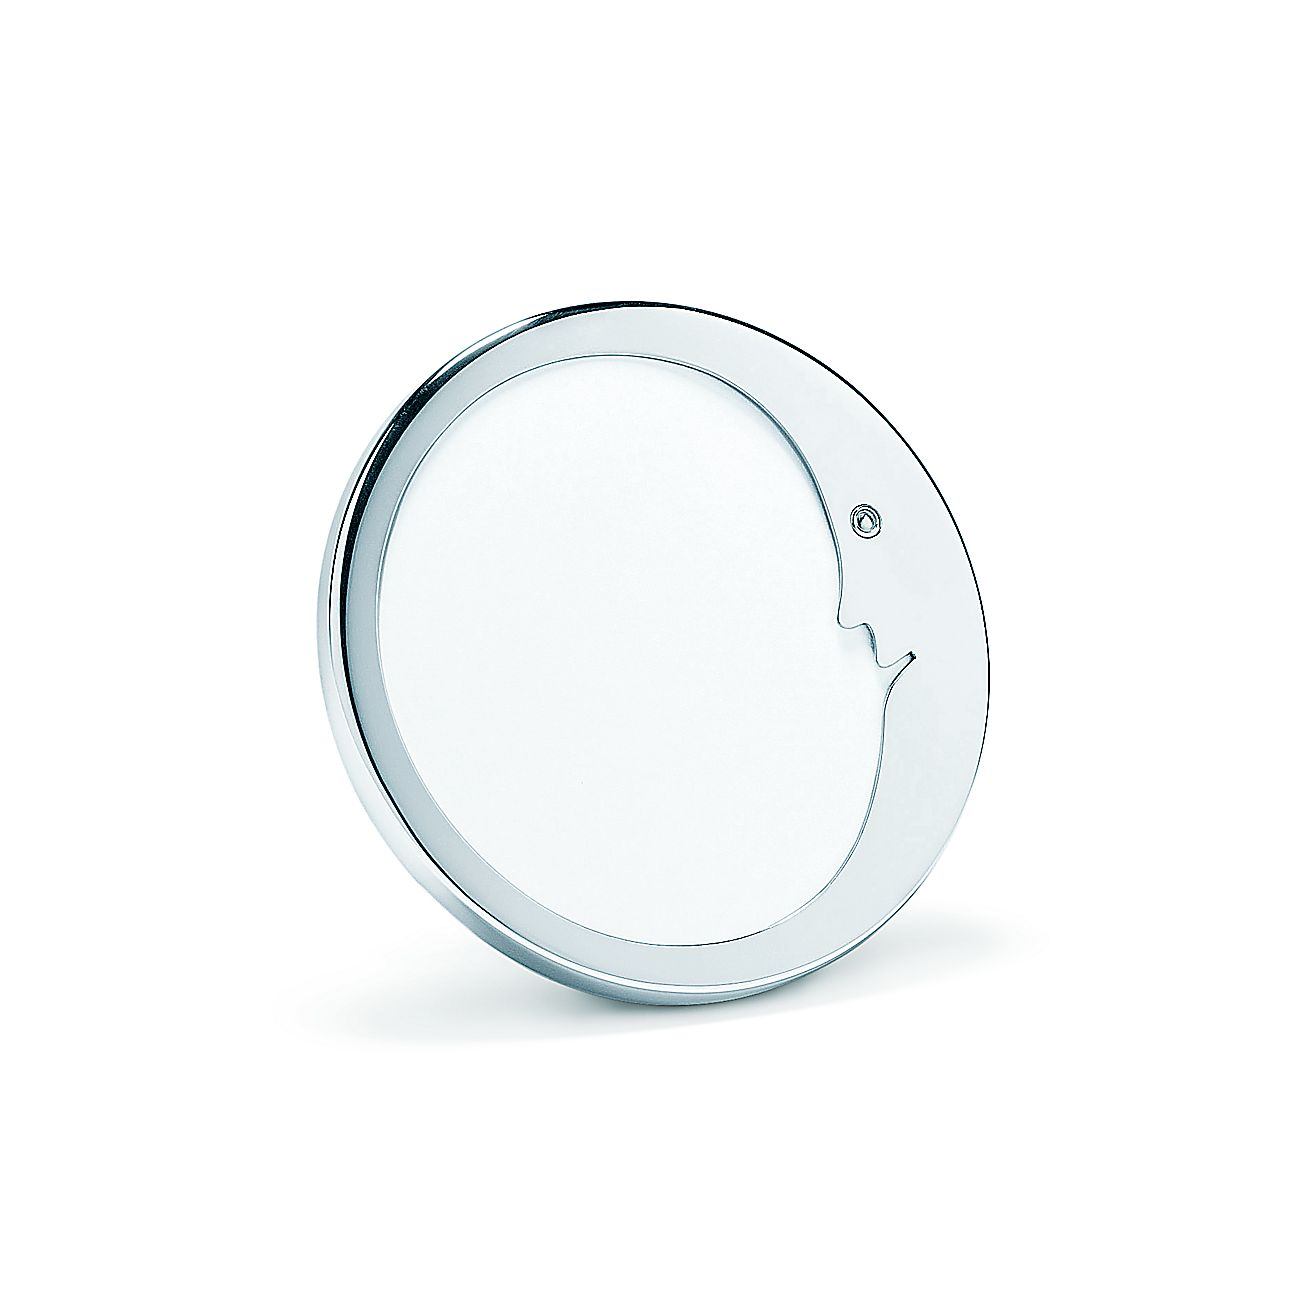 Man in the Moon frame in sterling silver.   Tiffany & Co.